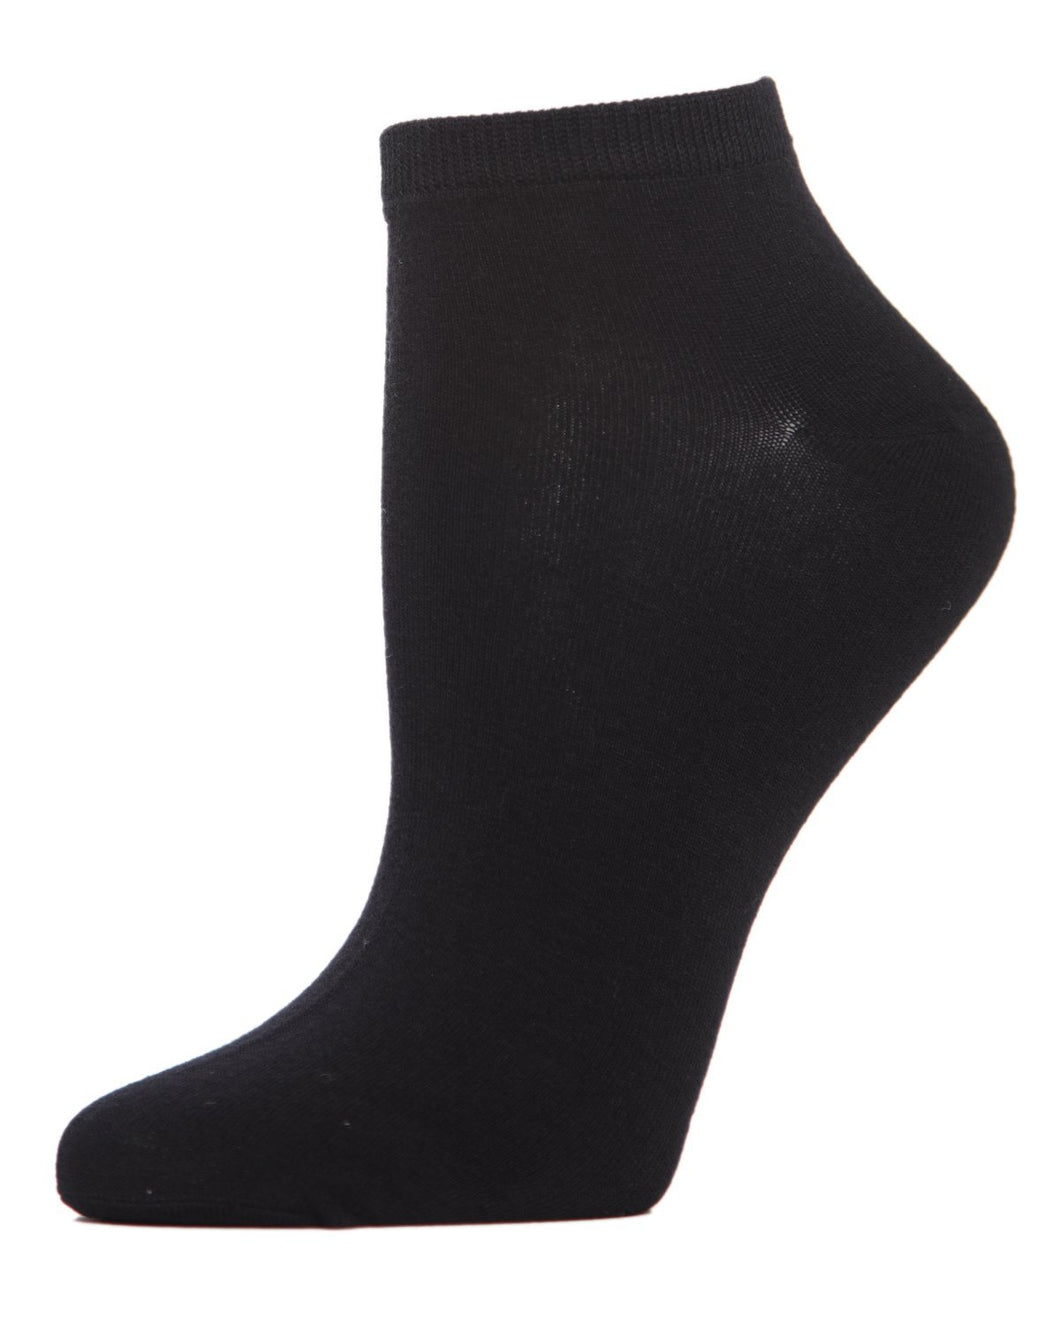 MeMoi Bamboo blend Solid Low Cut women's sock